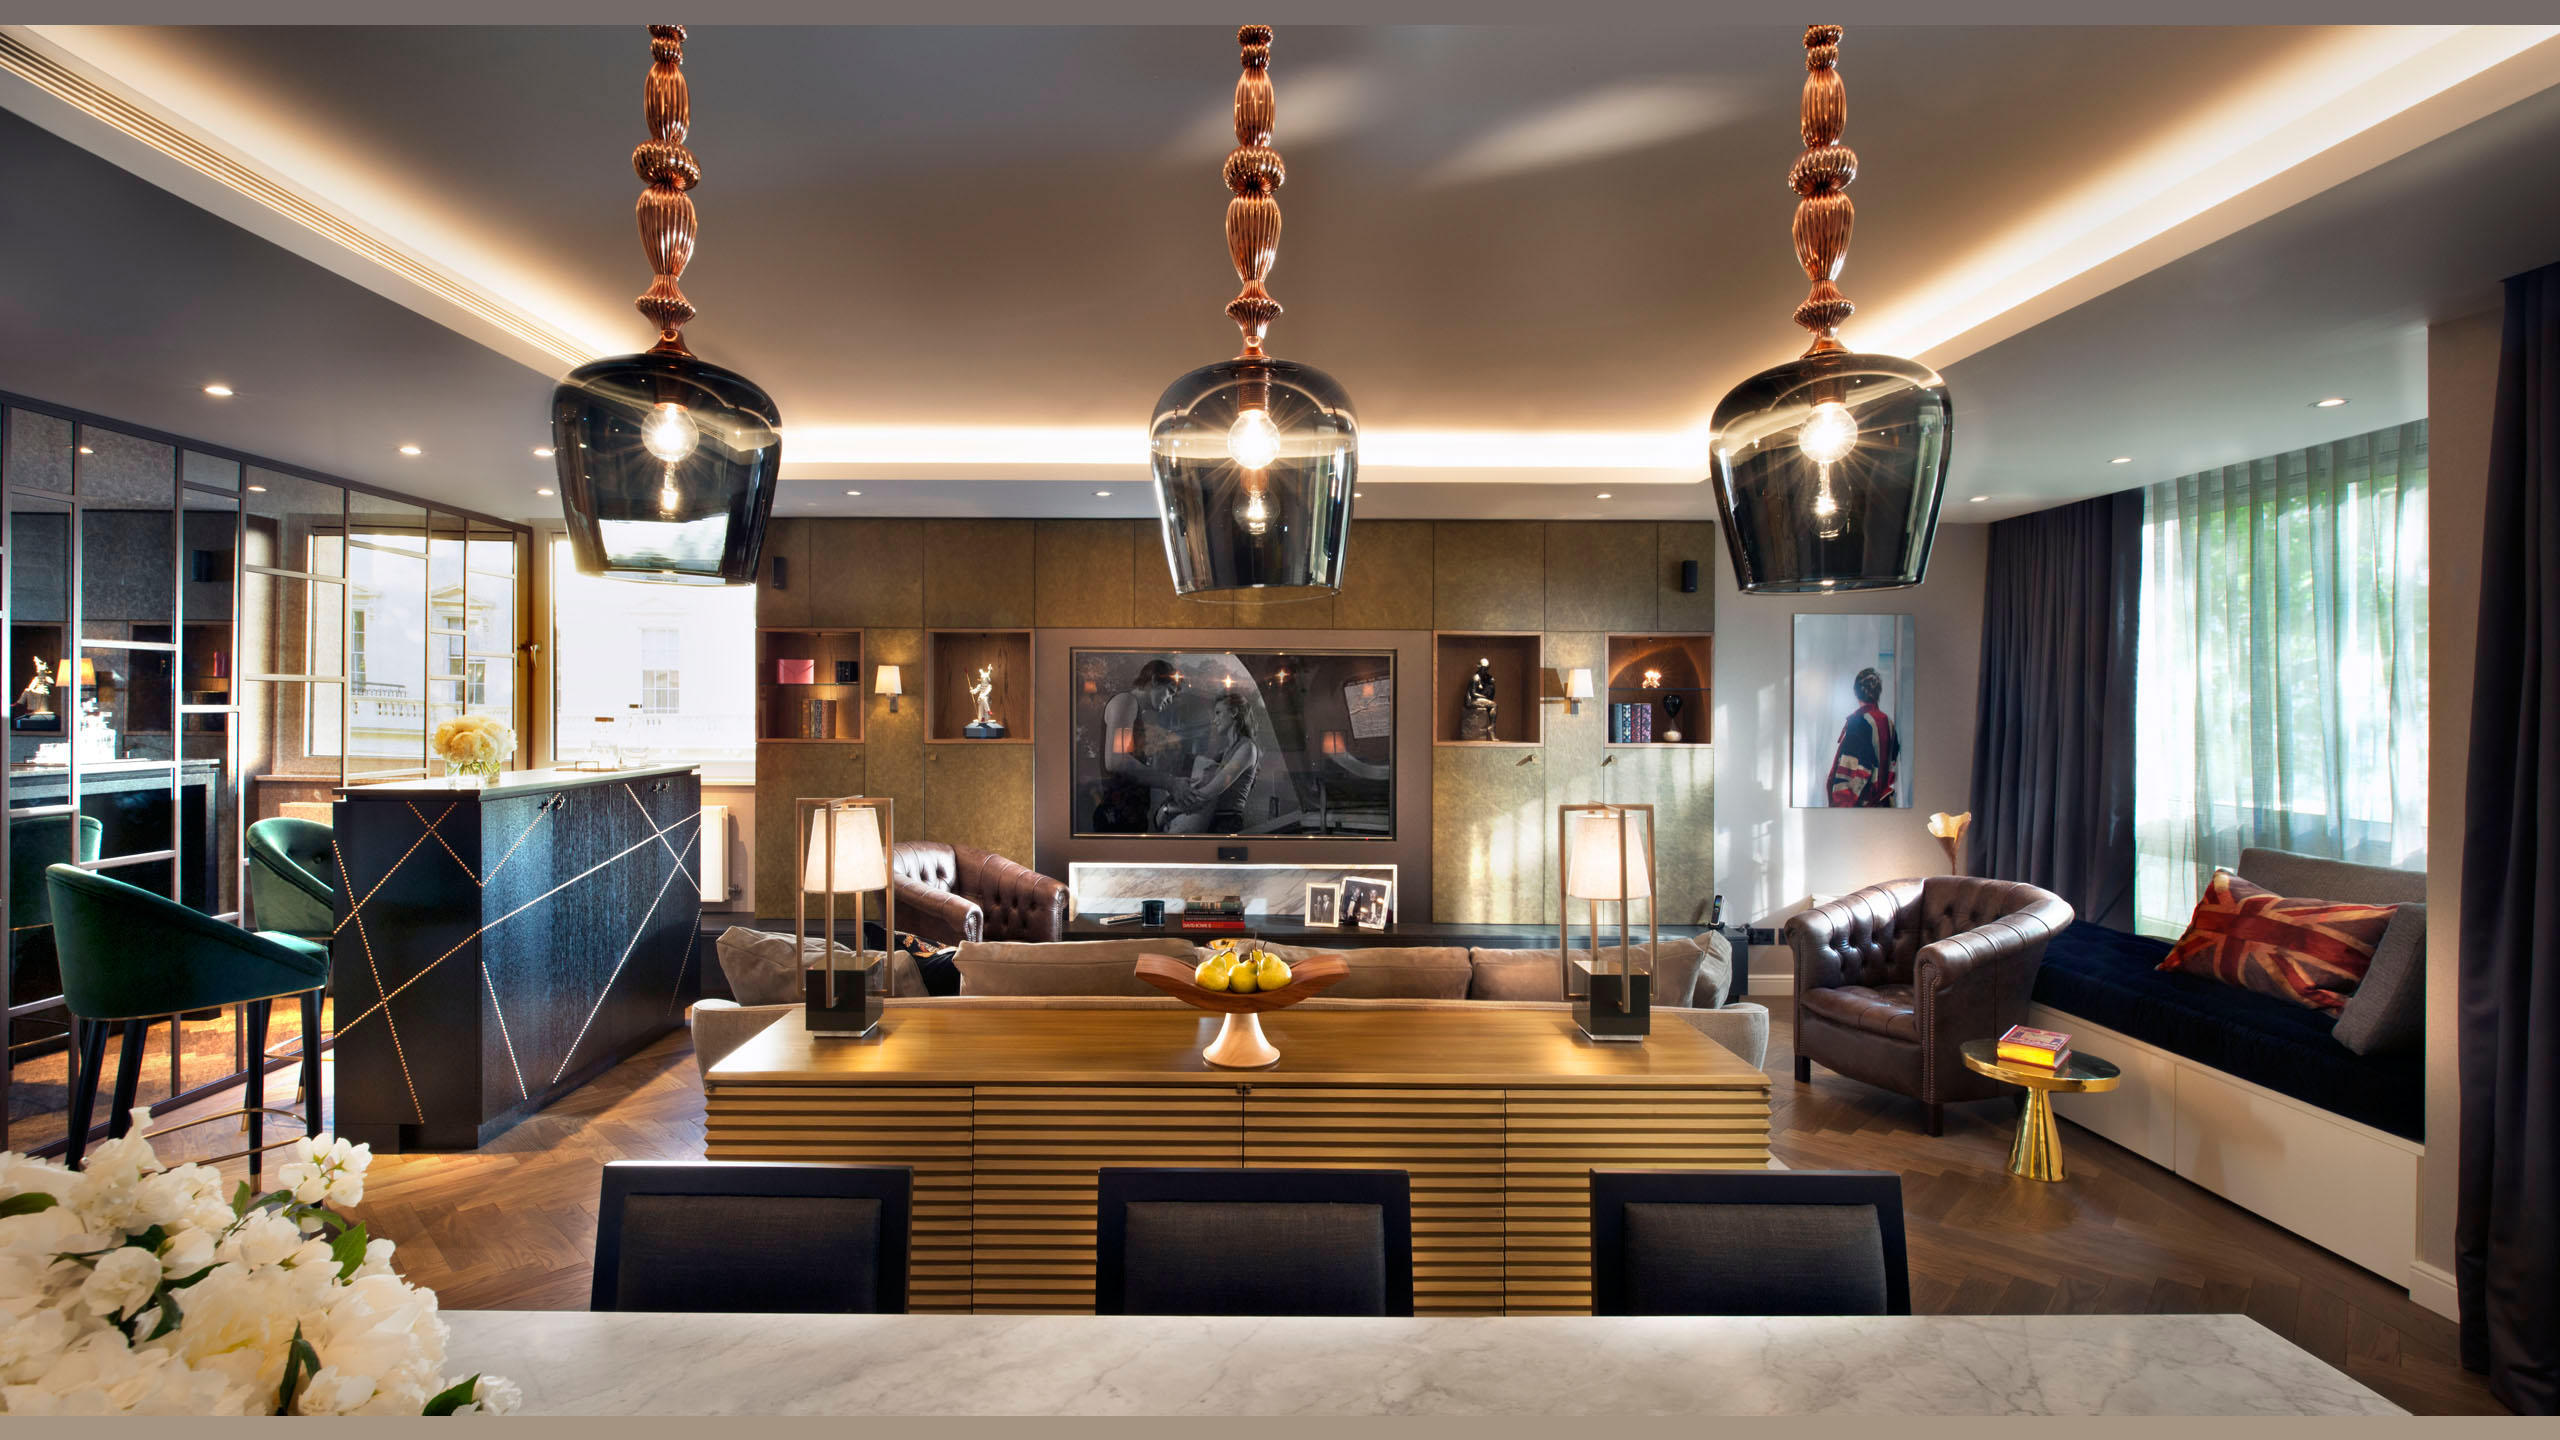 Interior Designer Famosi Interior Design Famosi Latest With Interior Design Famosi